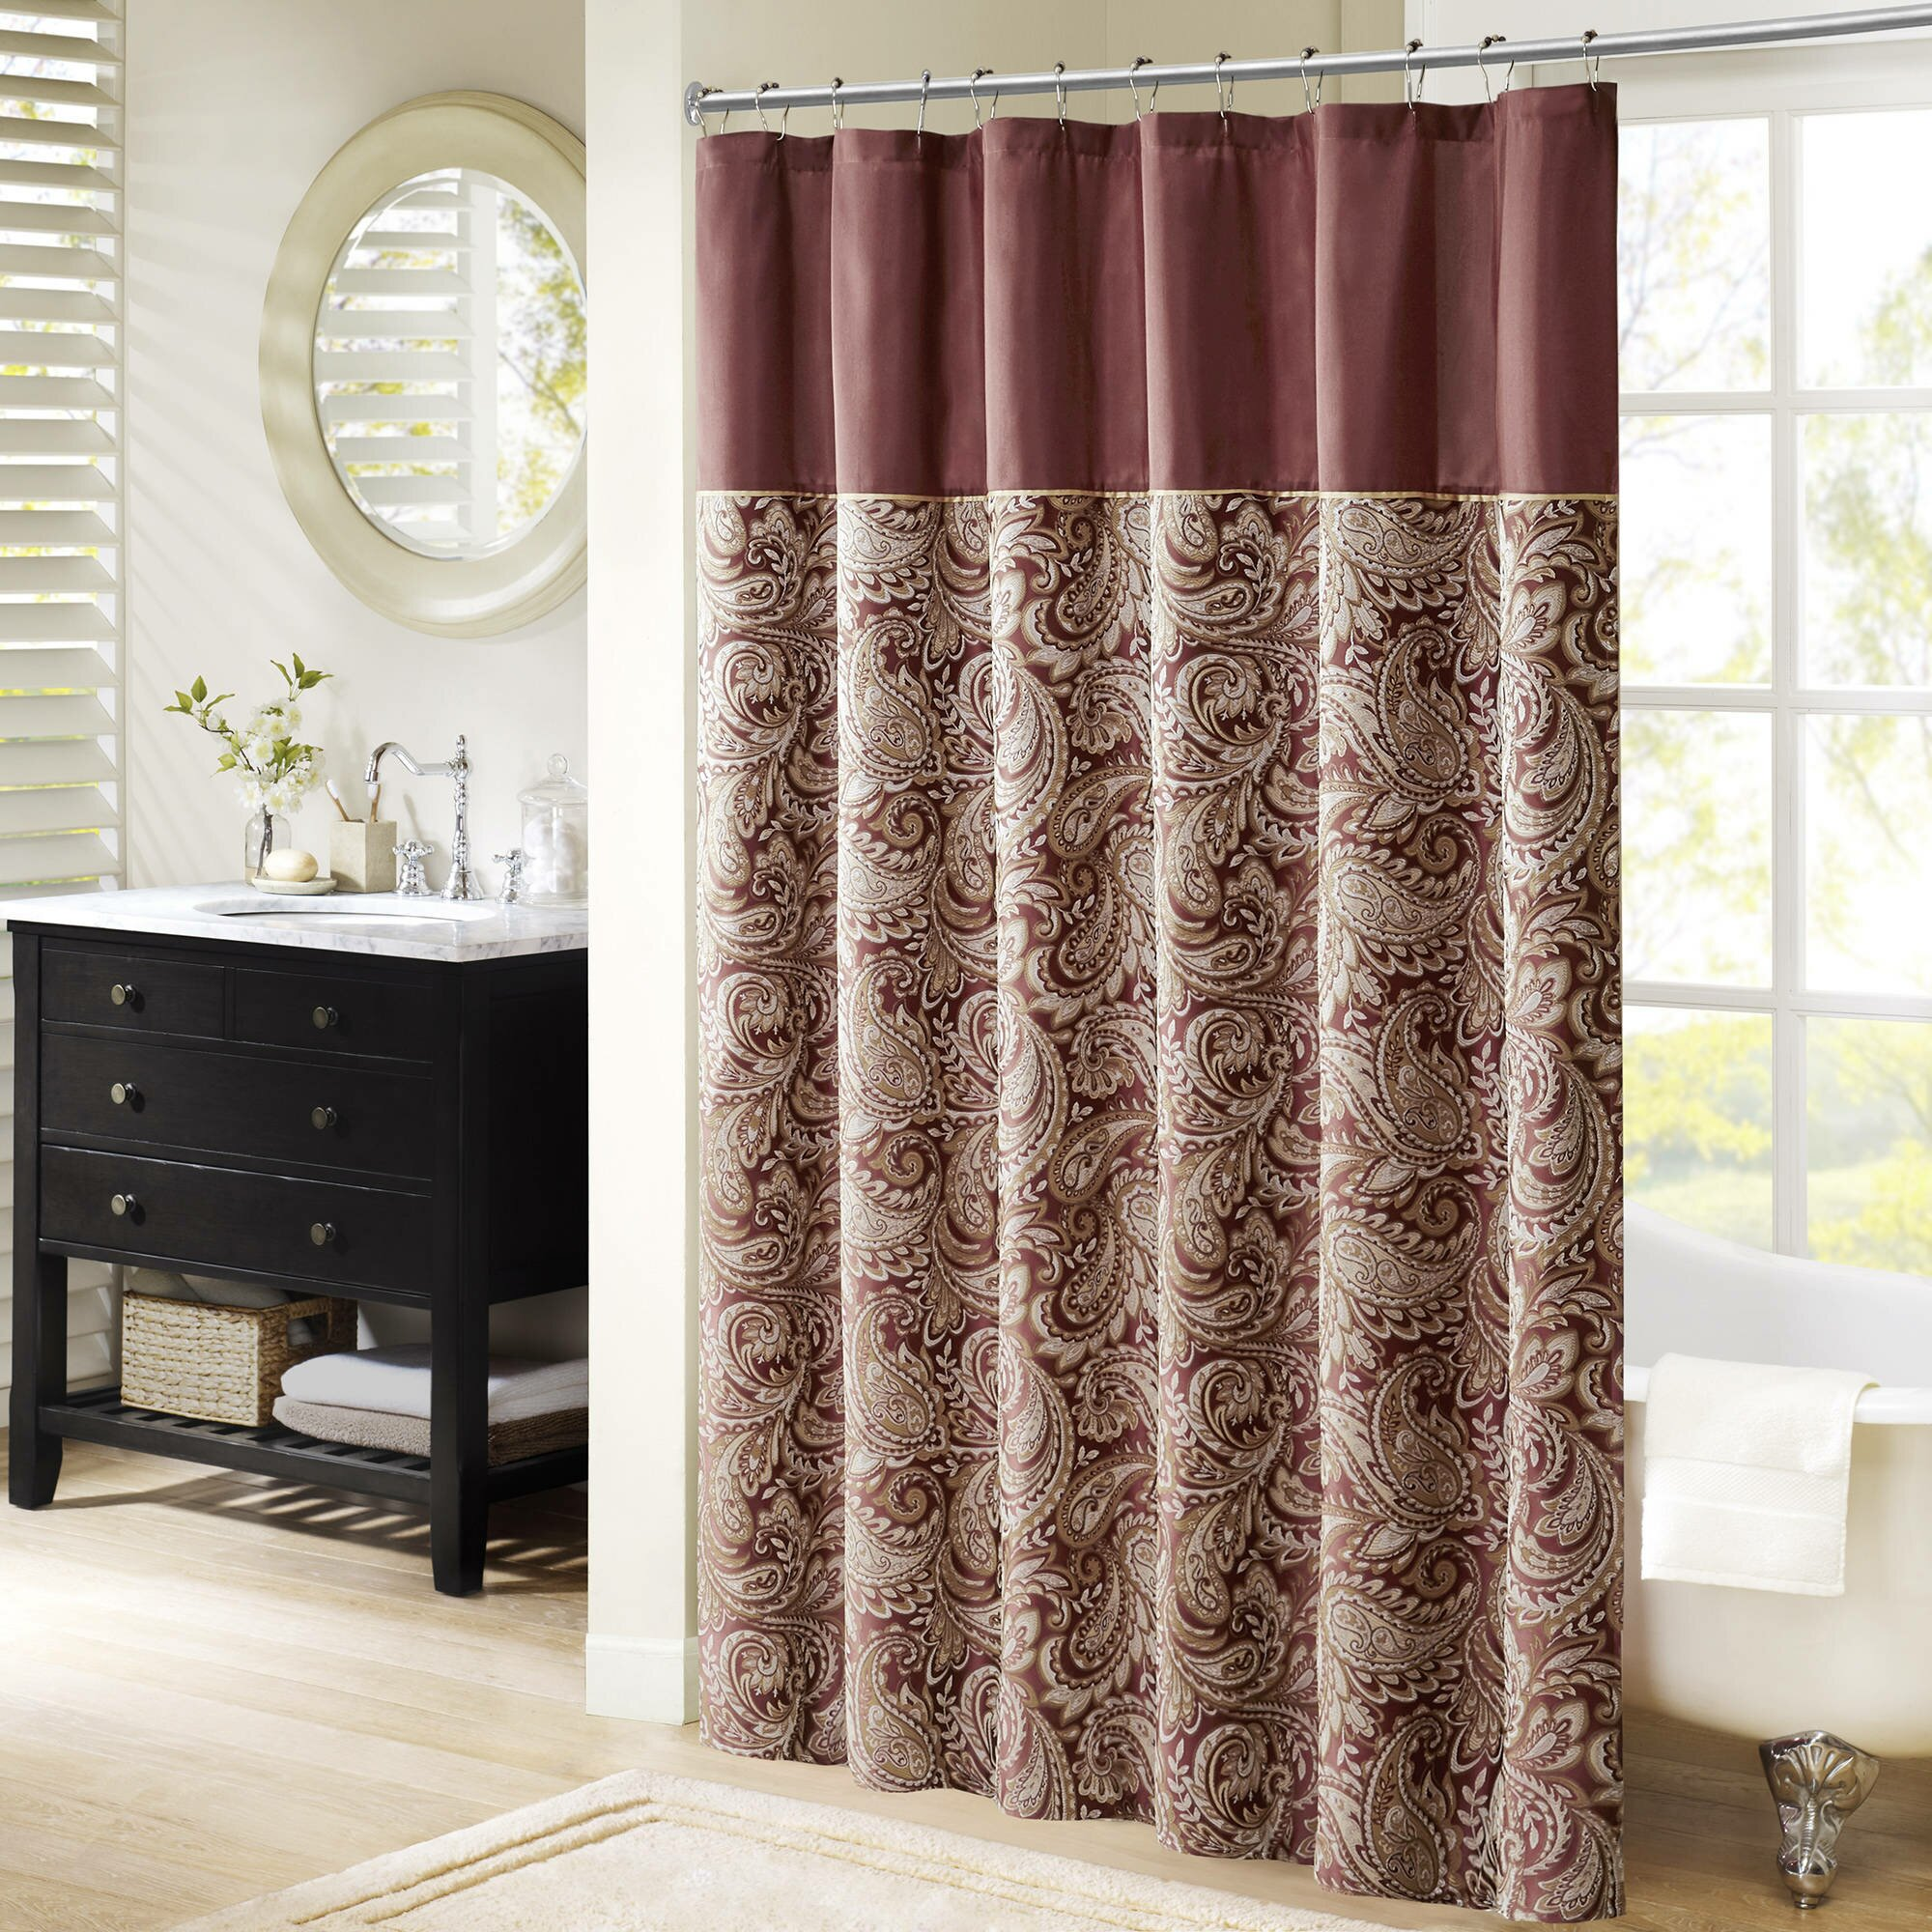 Shower Curtains in Walmart | Walmart Shower Curtain | Christmas Shower Curtains Walmart